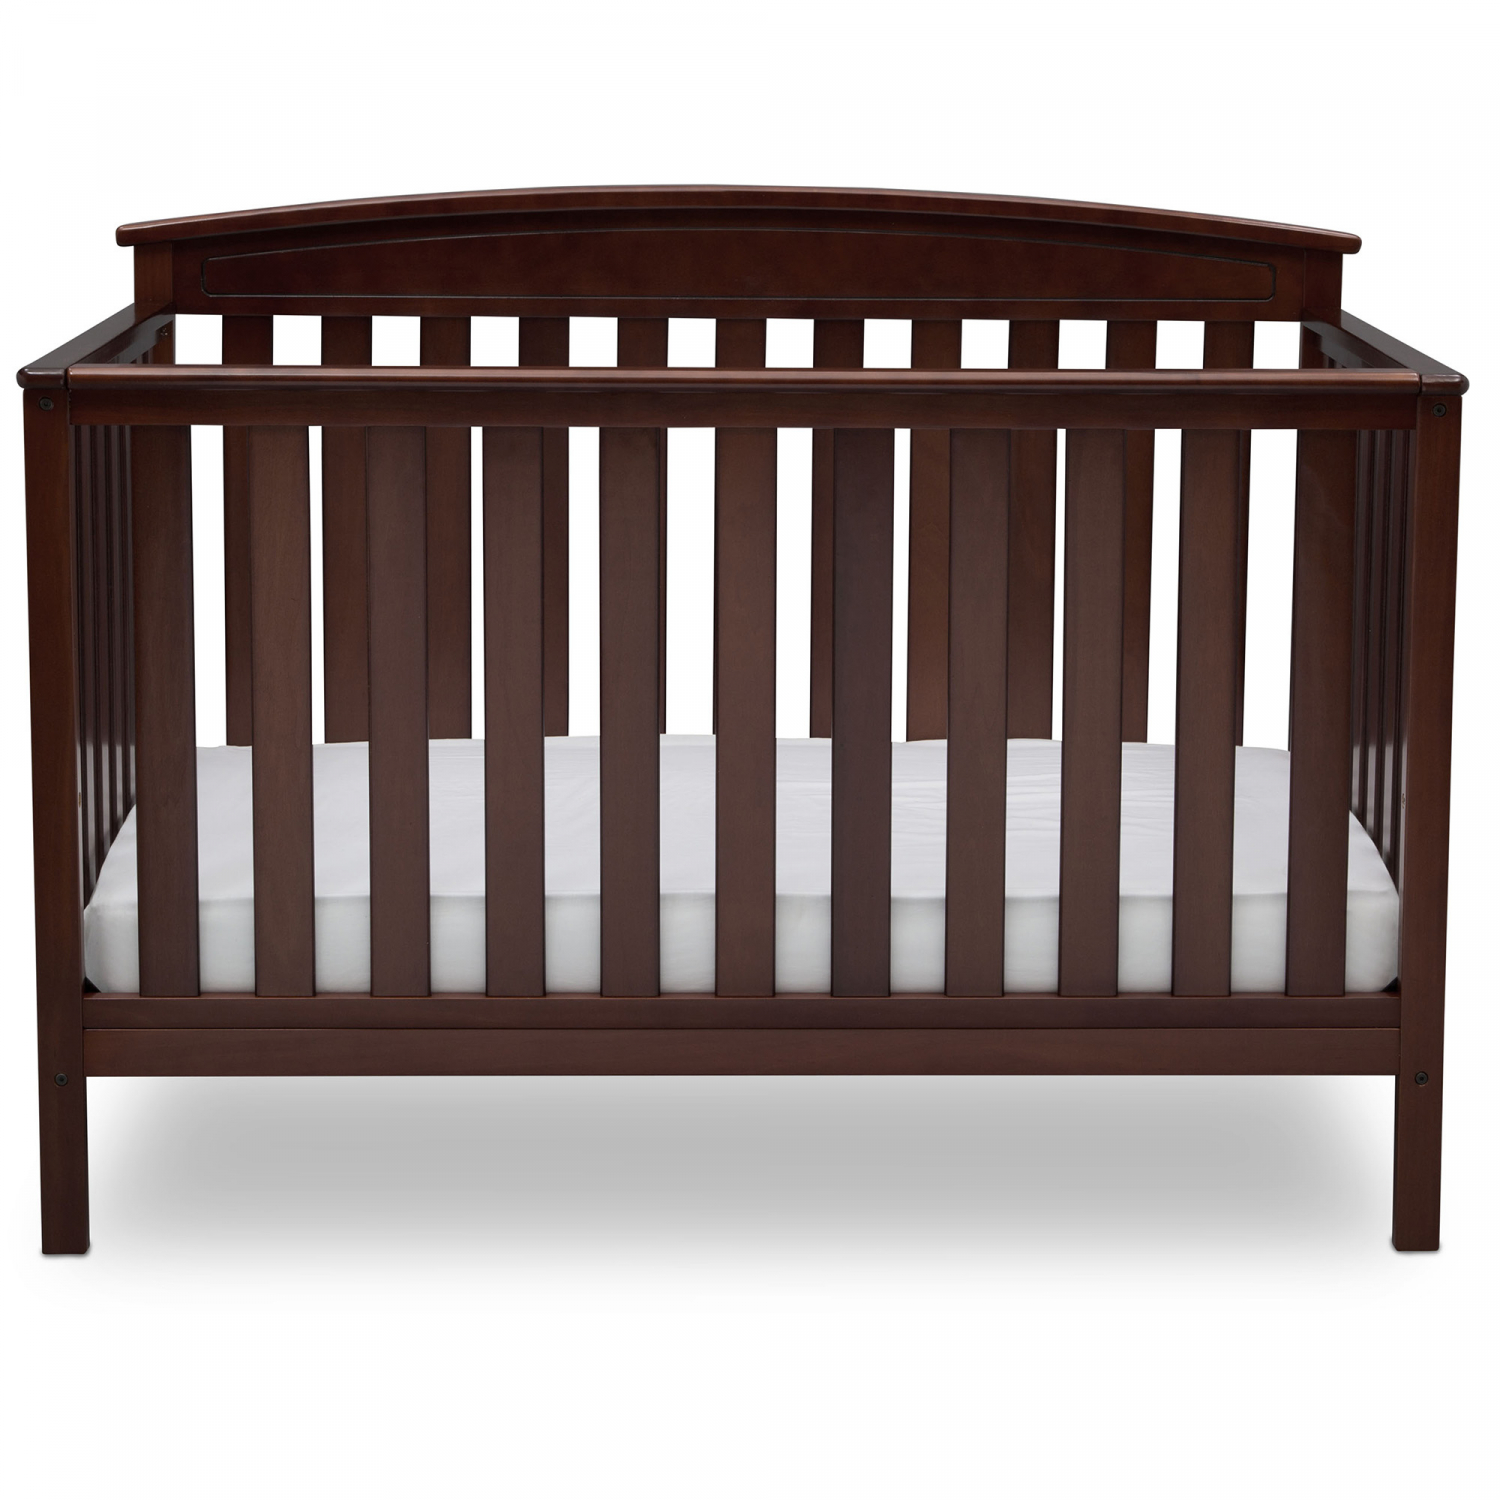 Convertible Baby Crib 4 in 1 Convert to Toddler Bed Solid ...